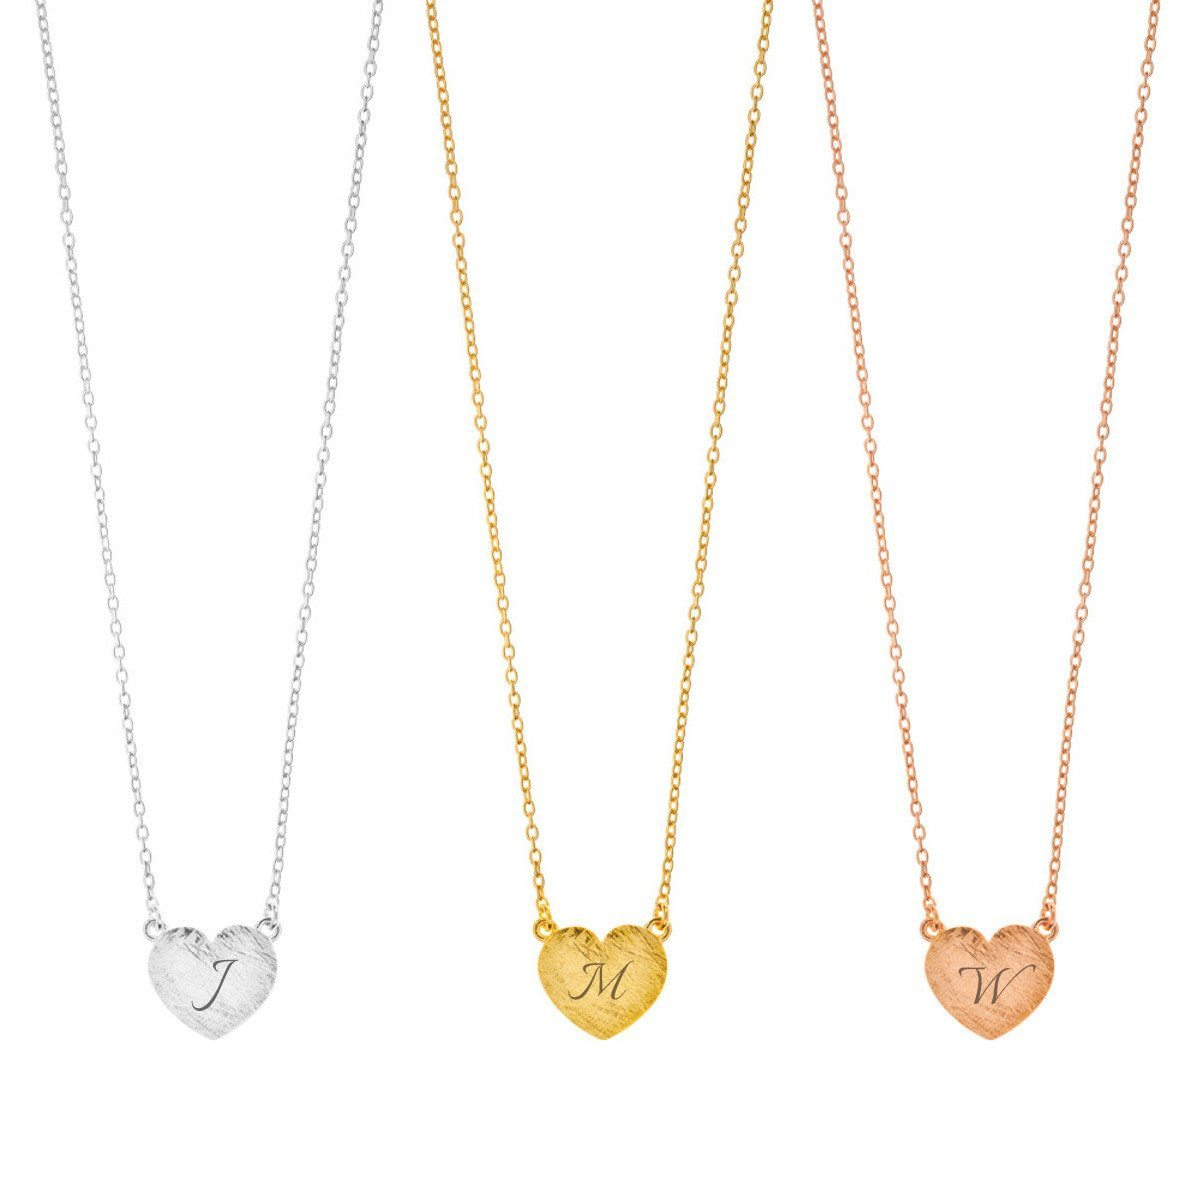 PERSONALIZED HEART DISC NECKLACE WITH NAME